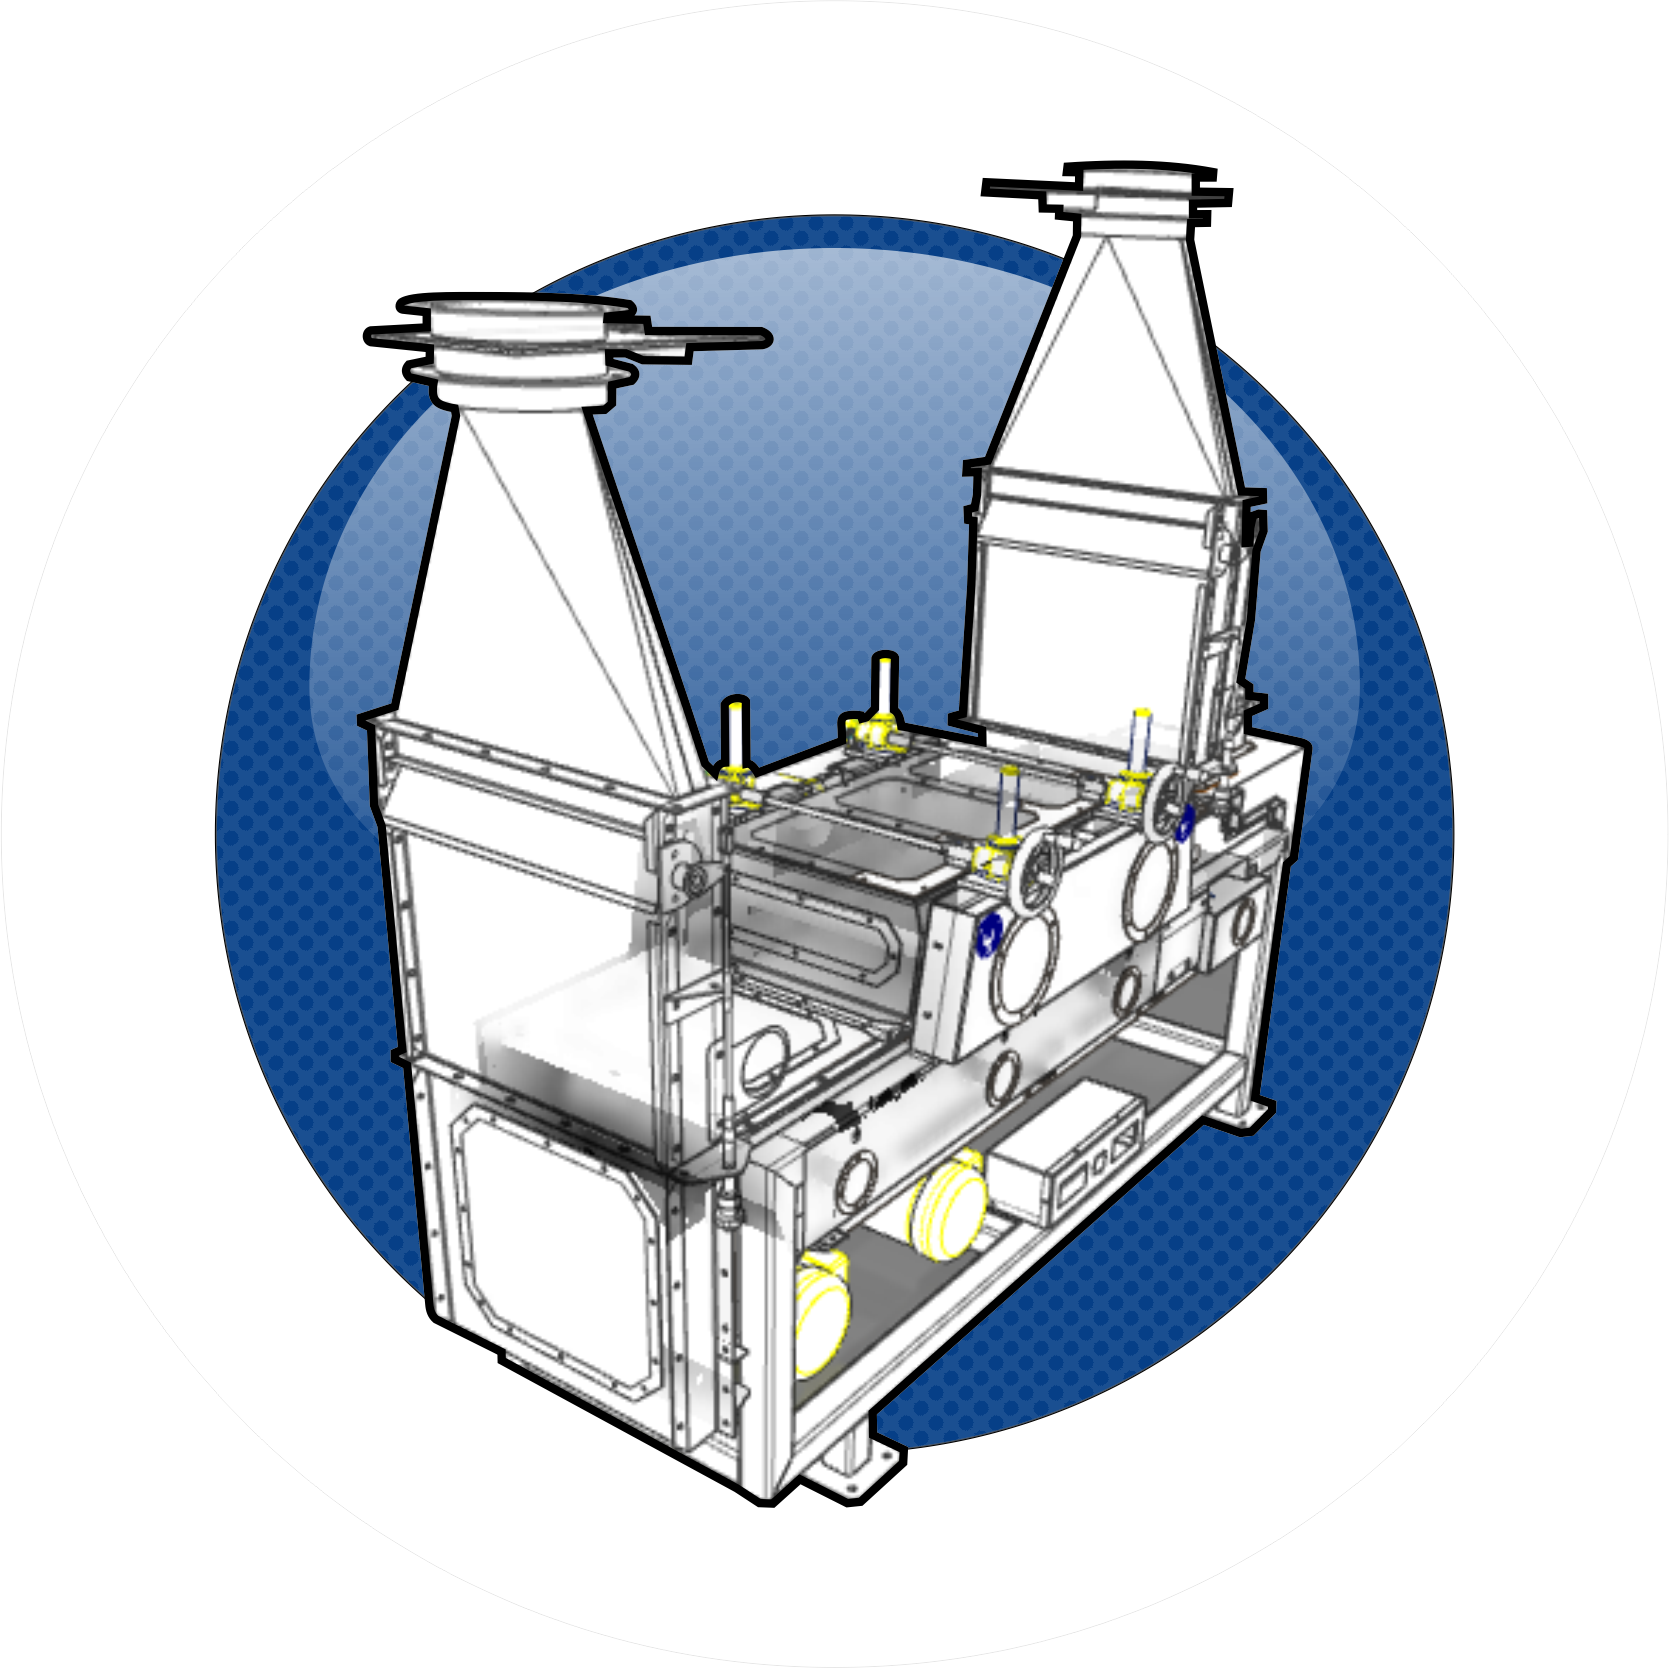 diagram of parts of an inhaler peanut processing equipment diagram of peacon sheller